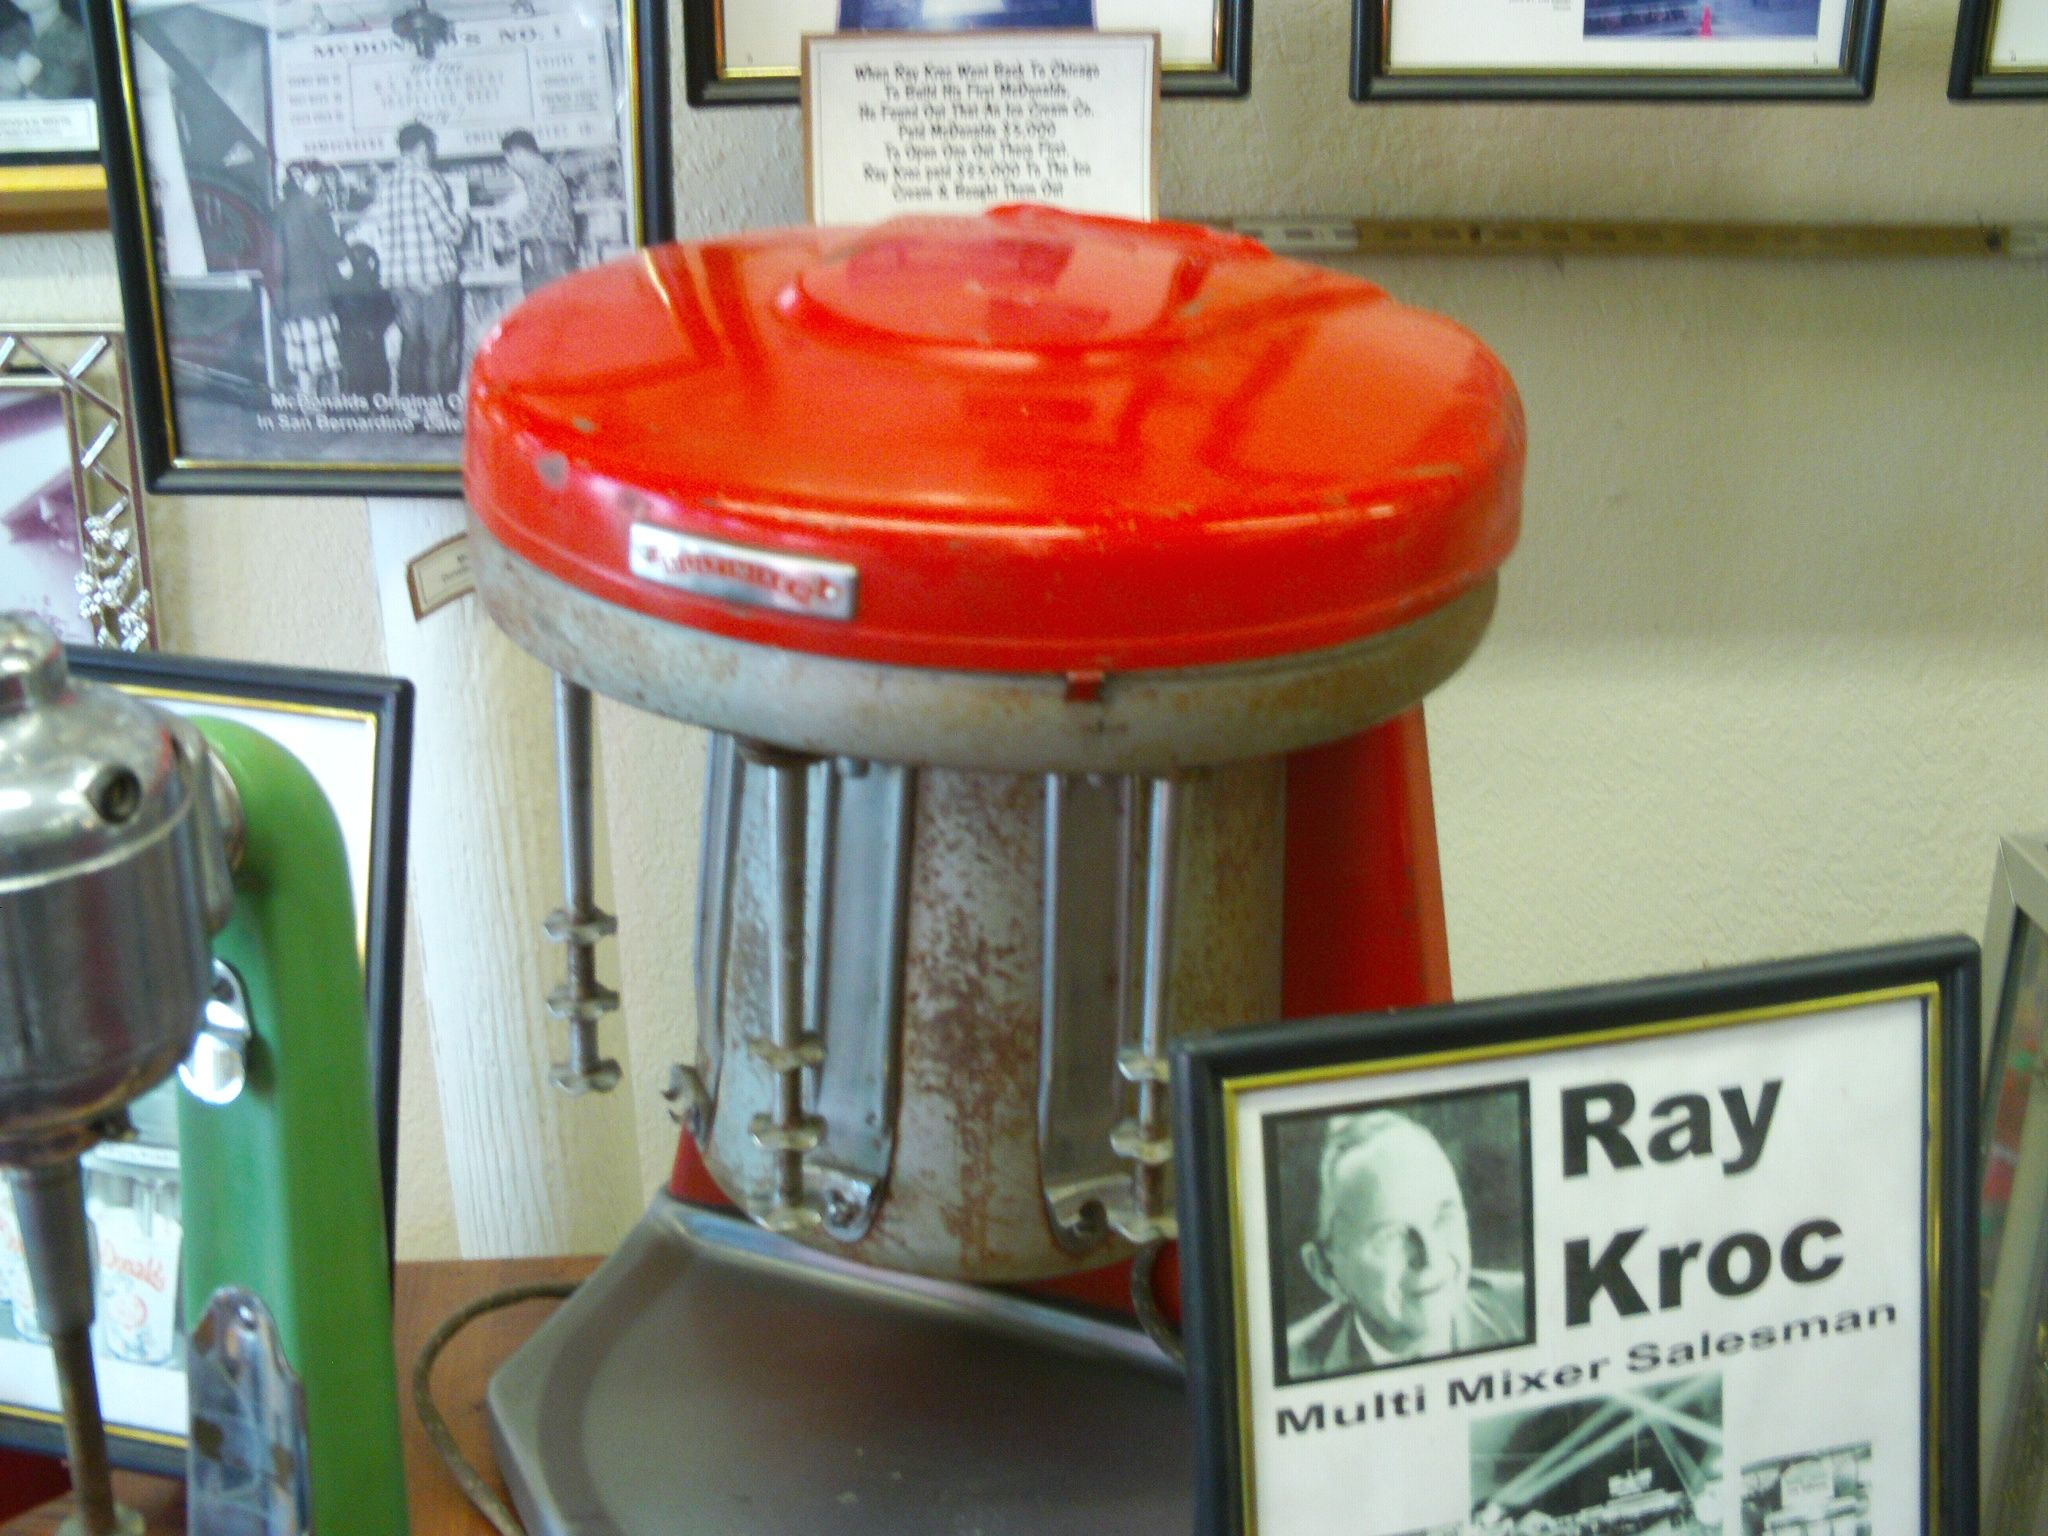 Un multi-mixer originale venduto dai Ray Kroc ai fratelli Mc Donald.